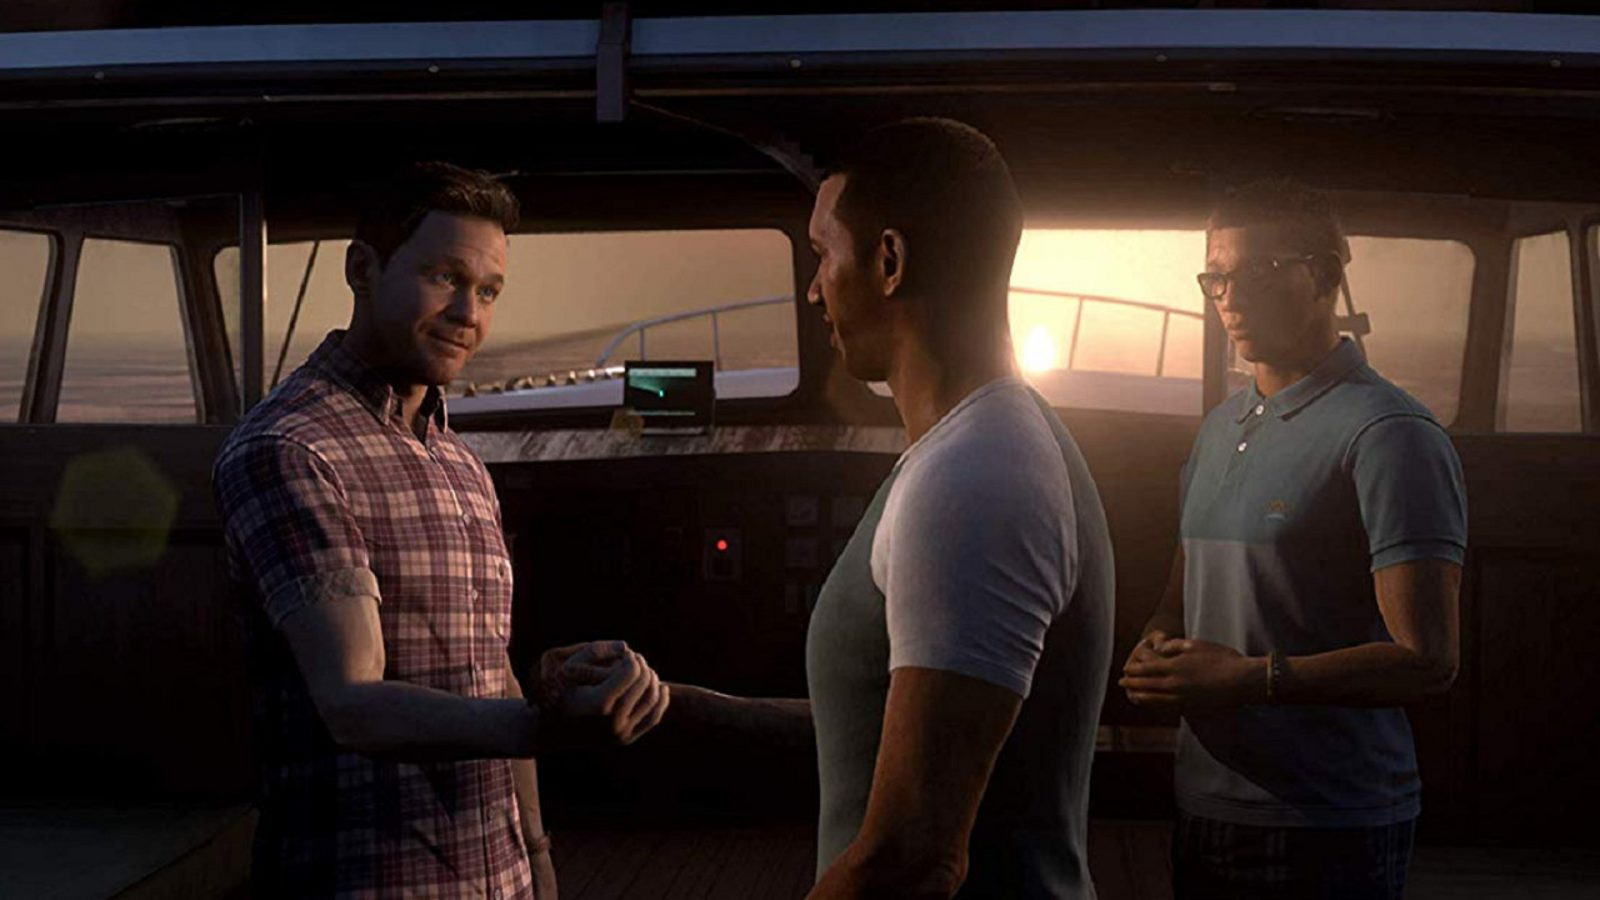 Owners of Man of Medan can share the game with a friend for free for a limited time